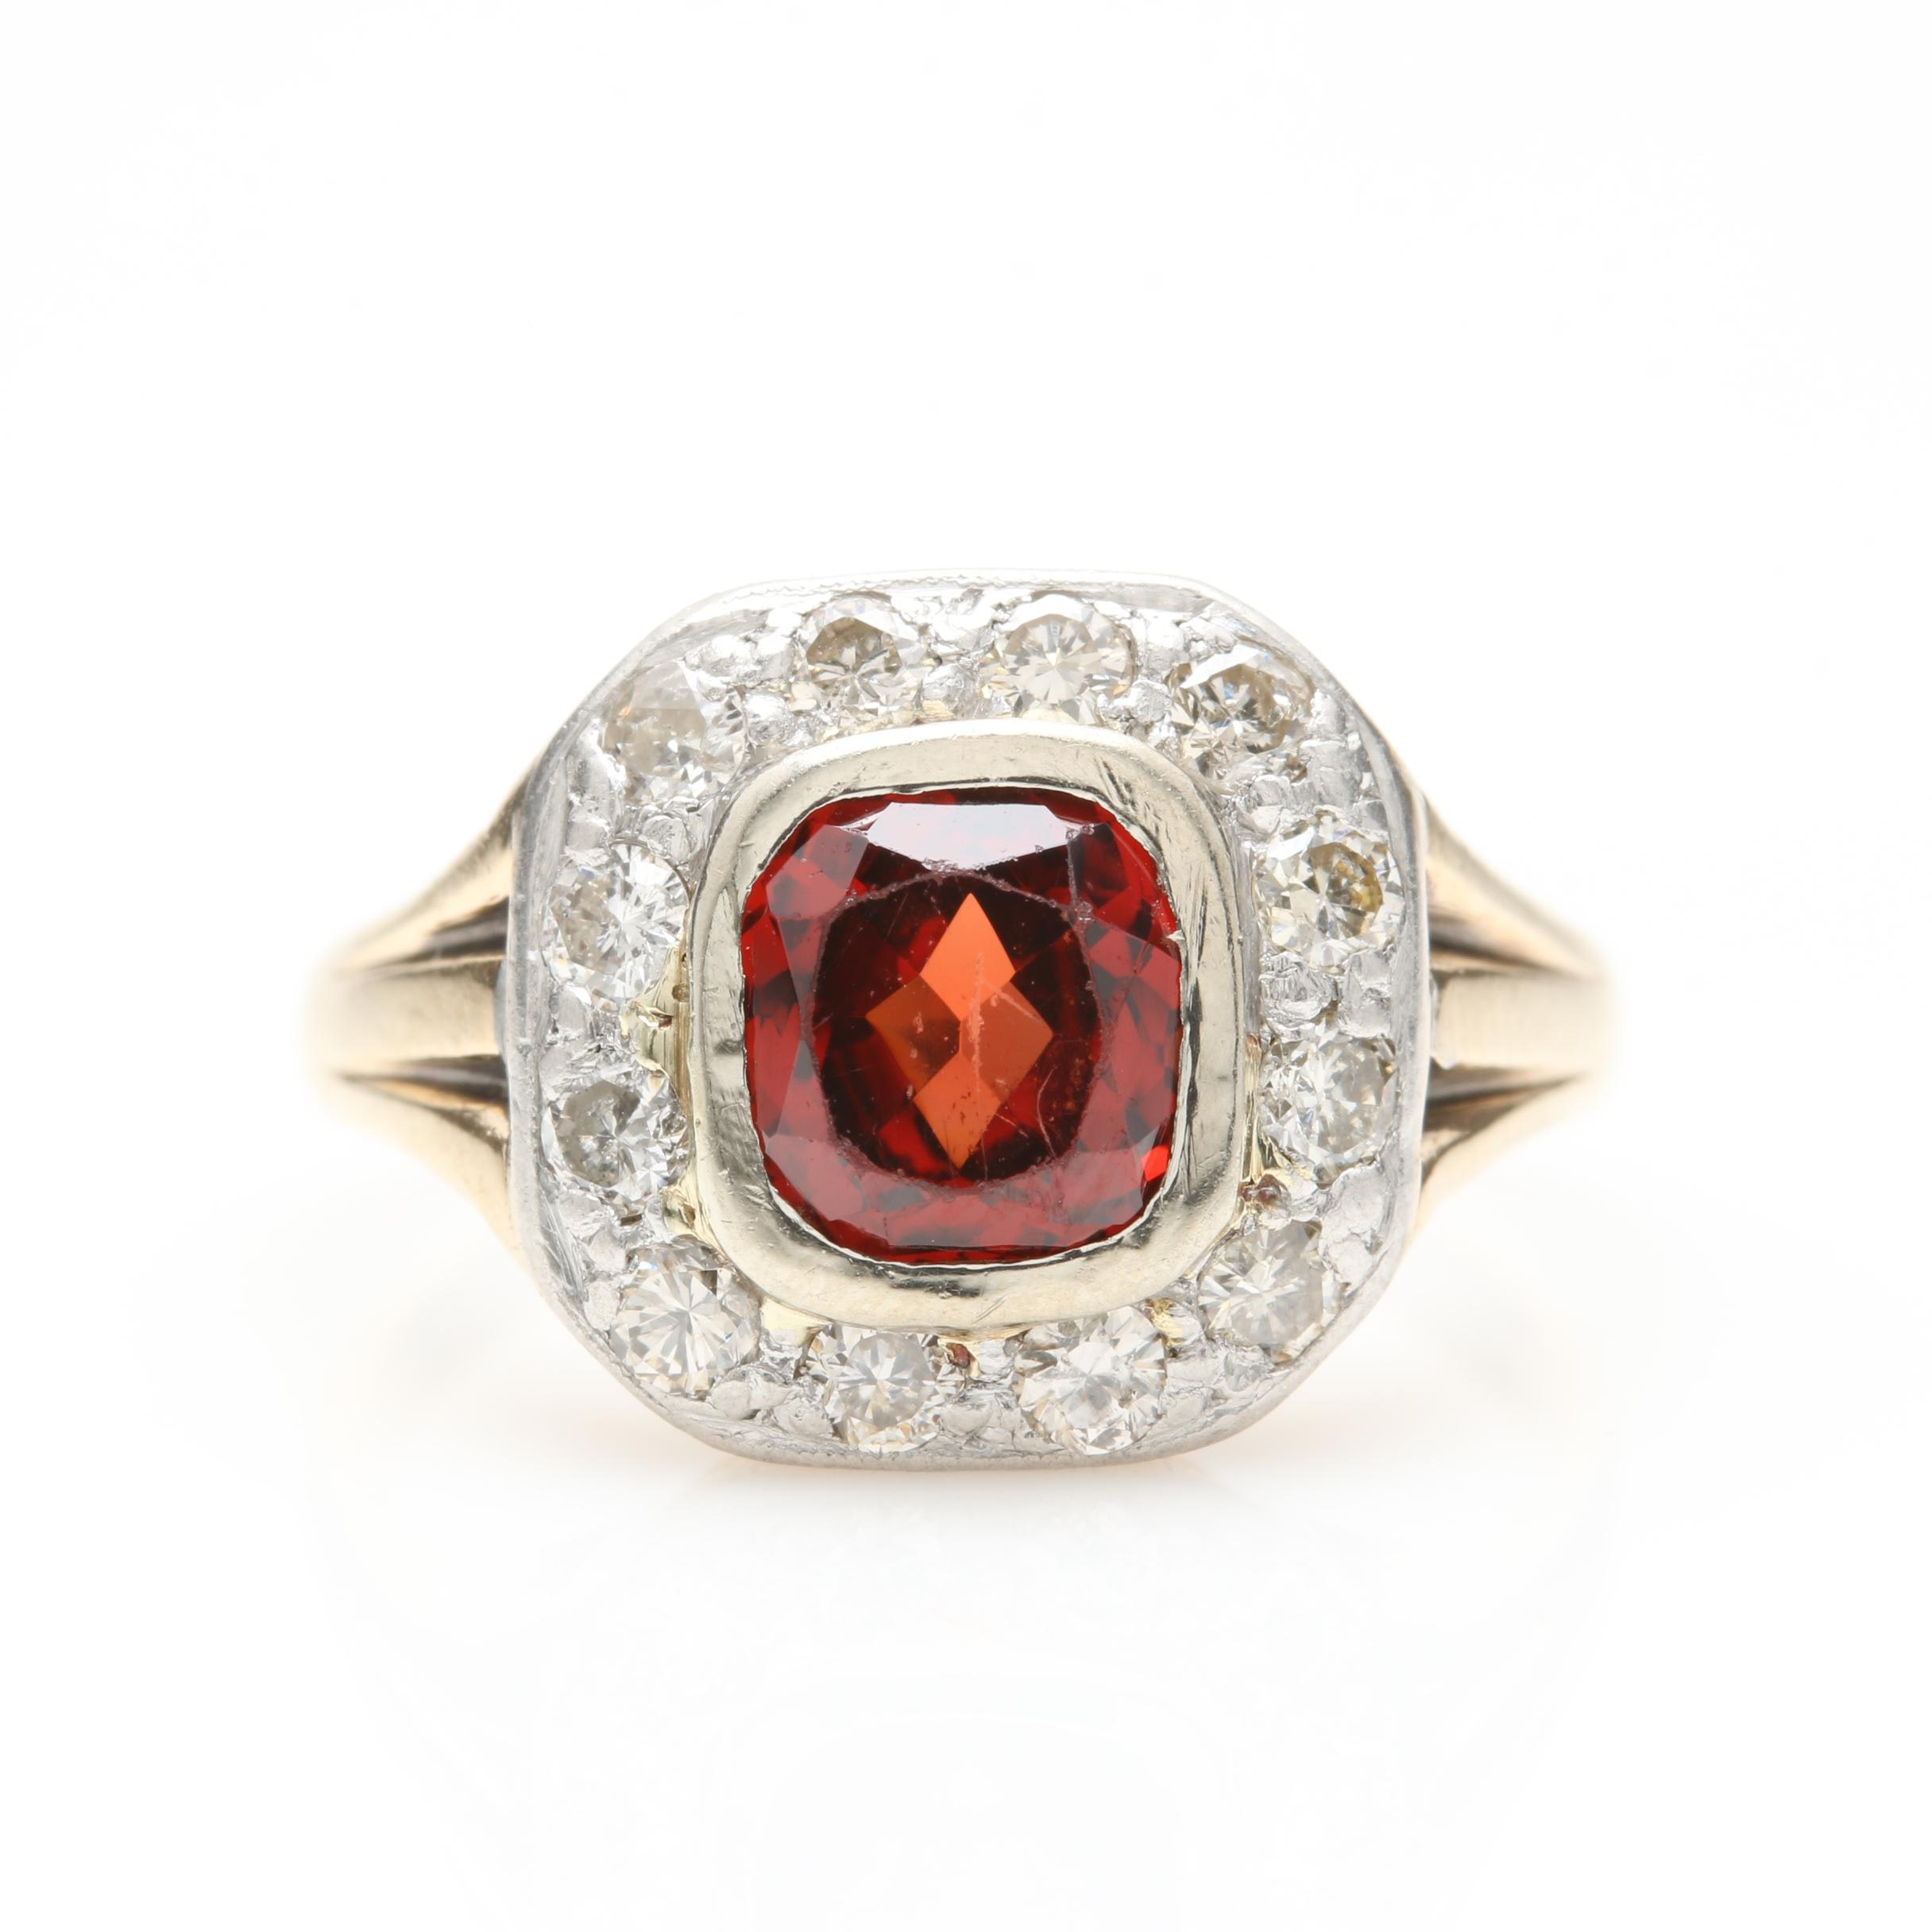 14K Yellow Gold and Platinum Garnet and Diamond Ring